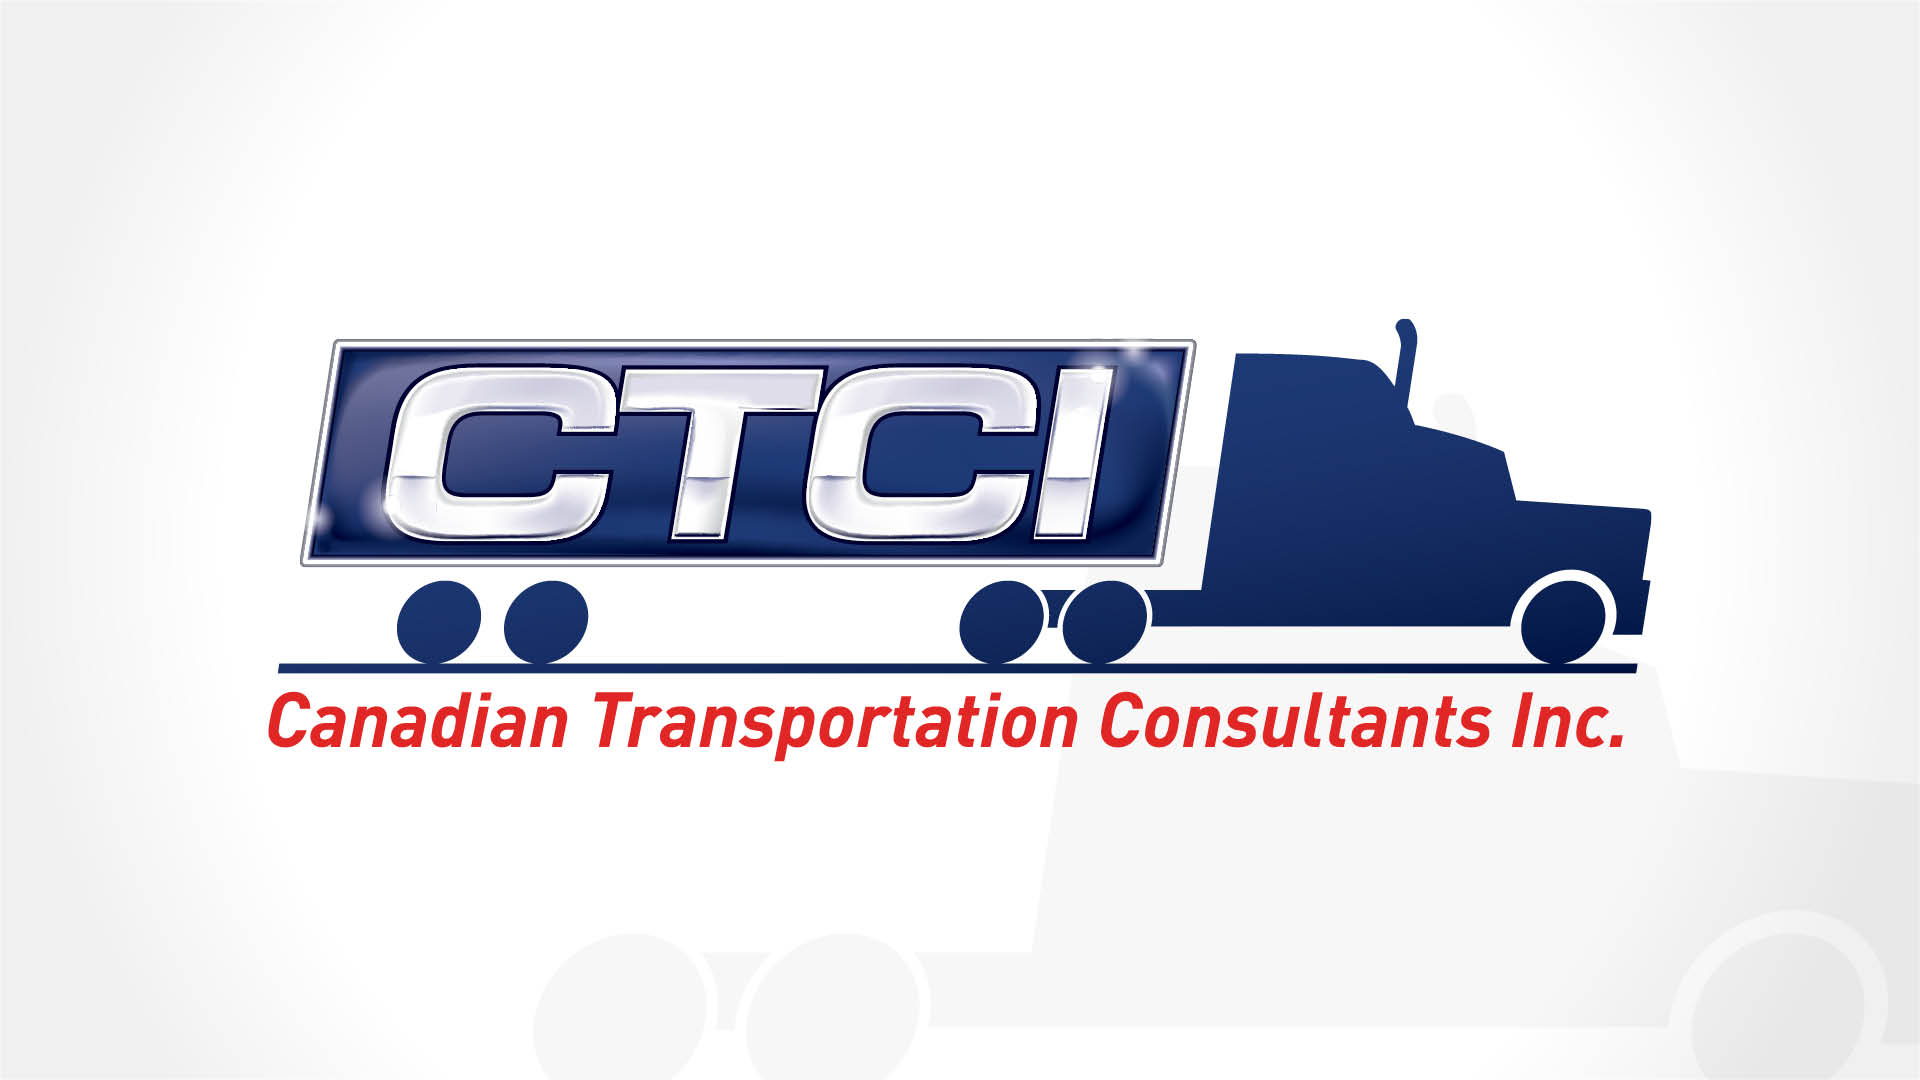 Canadian Transportation Consultants Inc., Brand, Canadian Transportation Consultants Inc., Portfolio Image